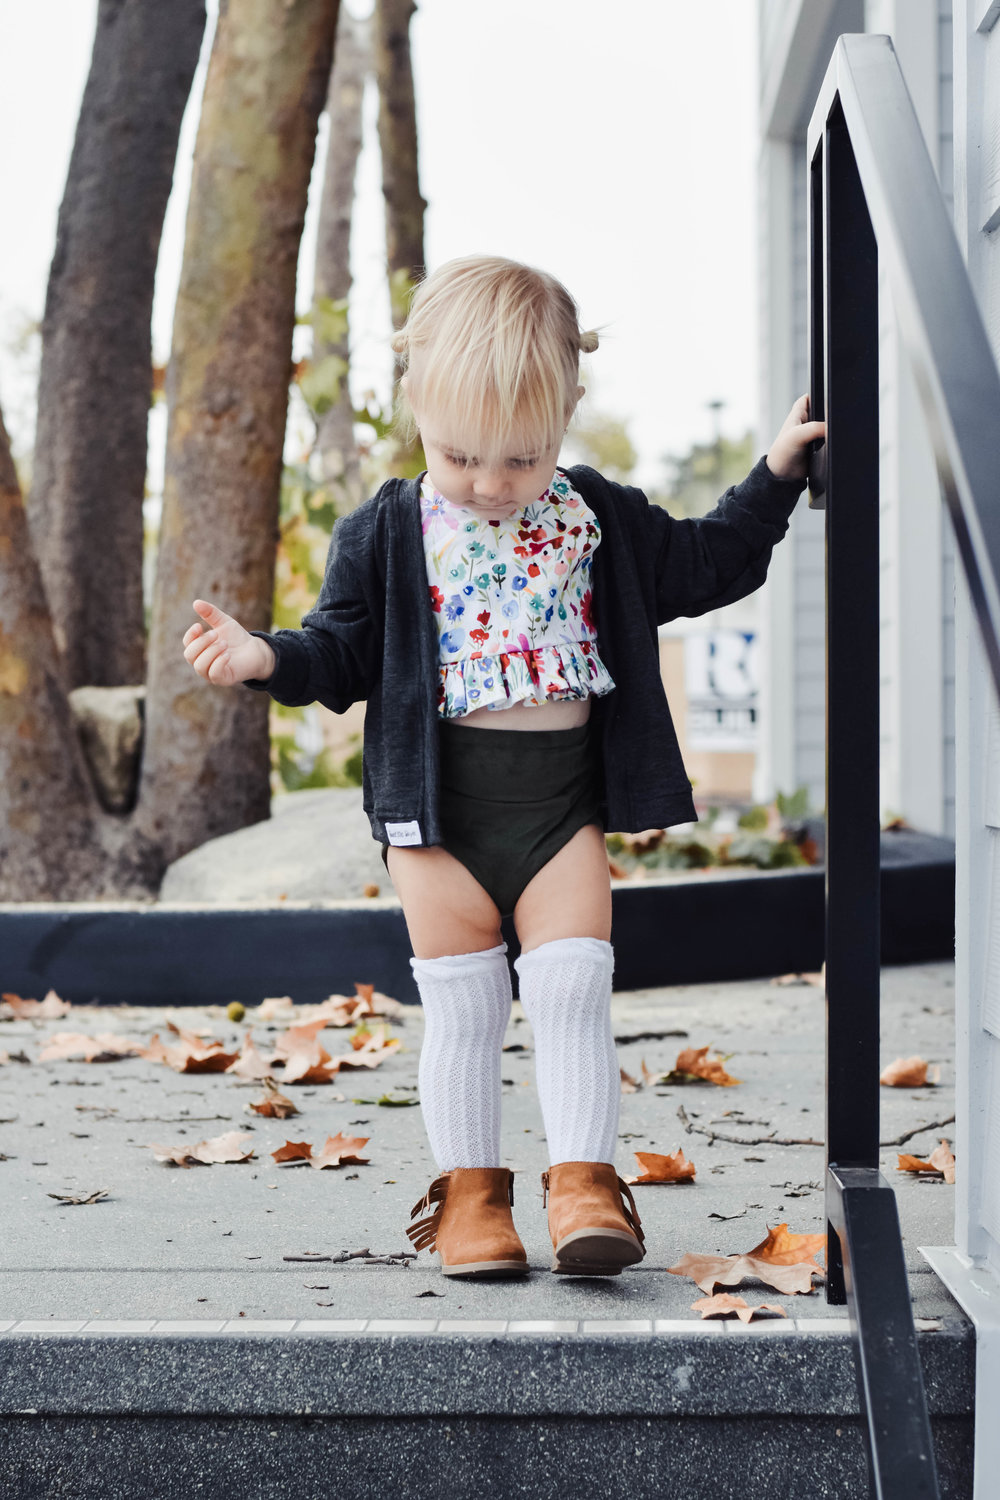 Kids Fall Fashion Guide | Sweet Little Skye - Baby High Waisted Bloomers, Baby Crop Tops, Baby Cardigans